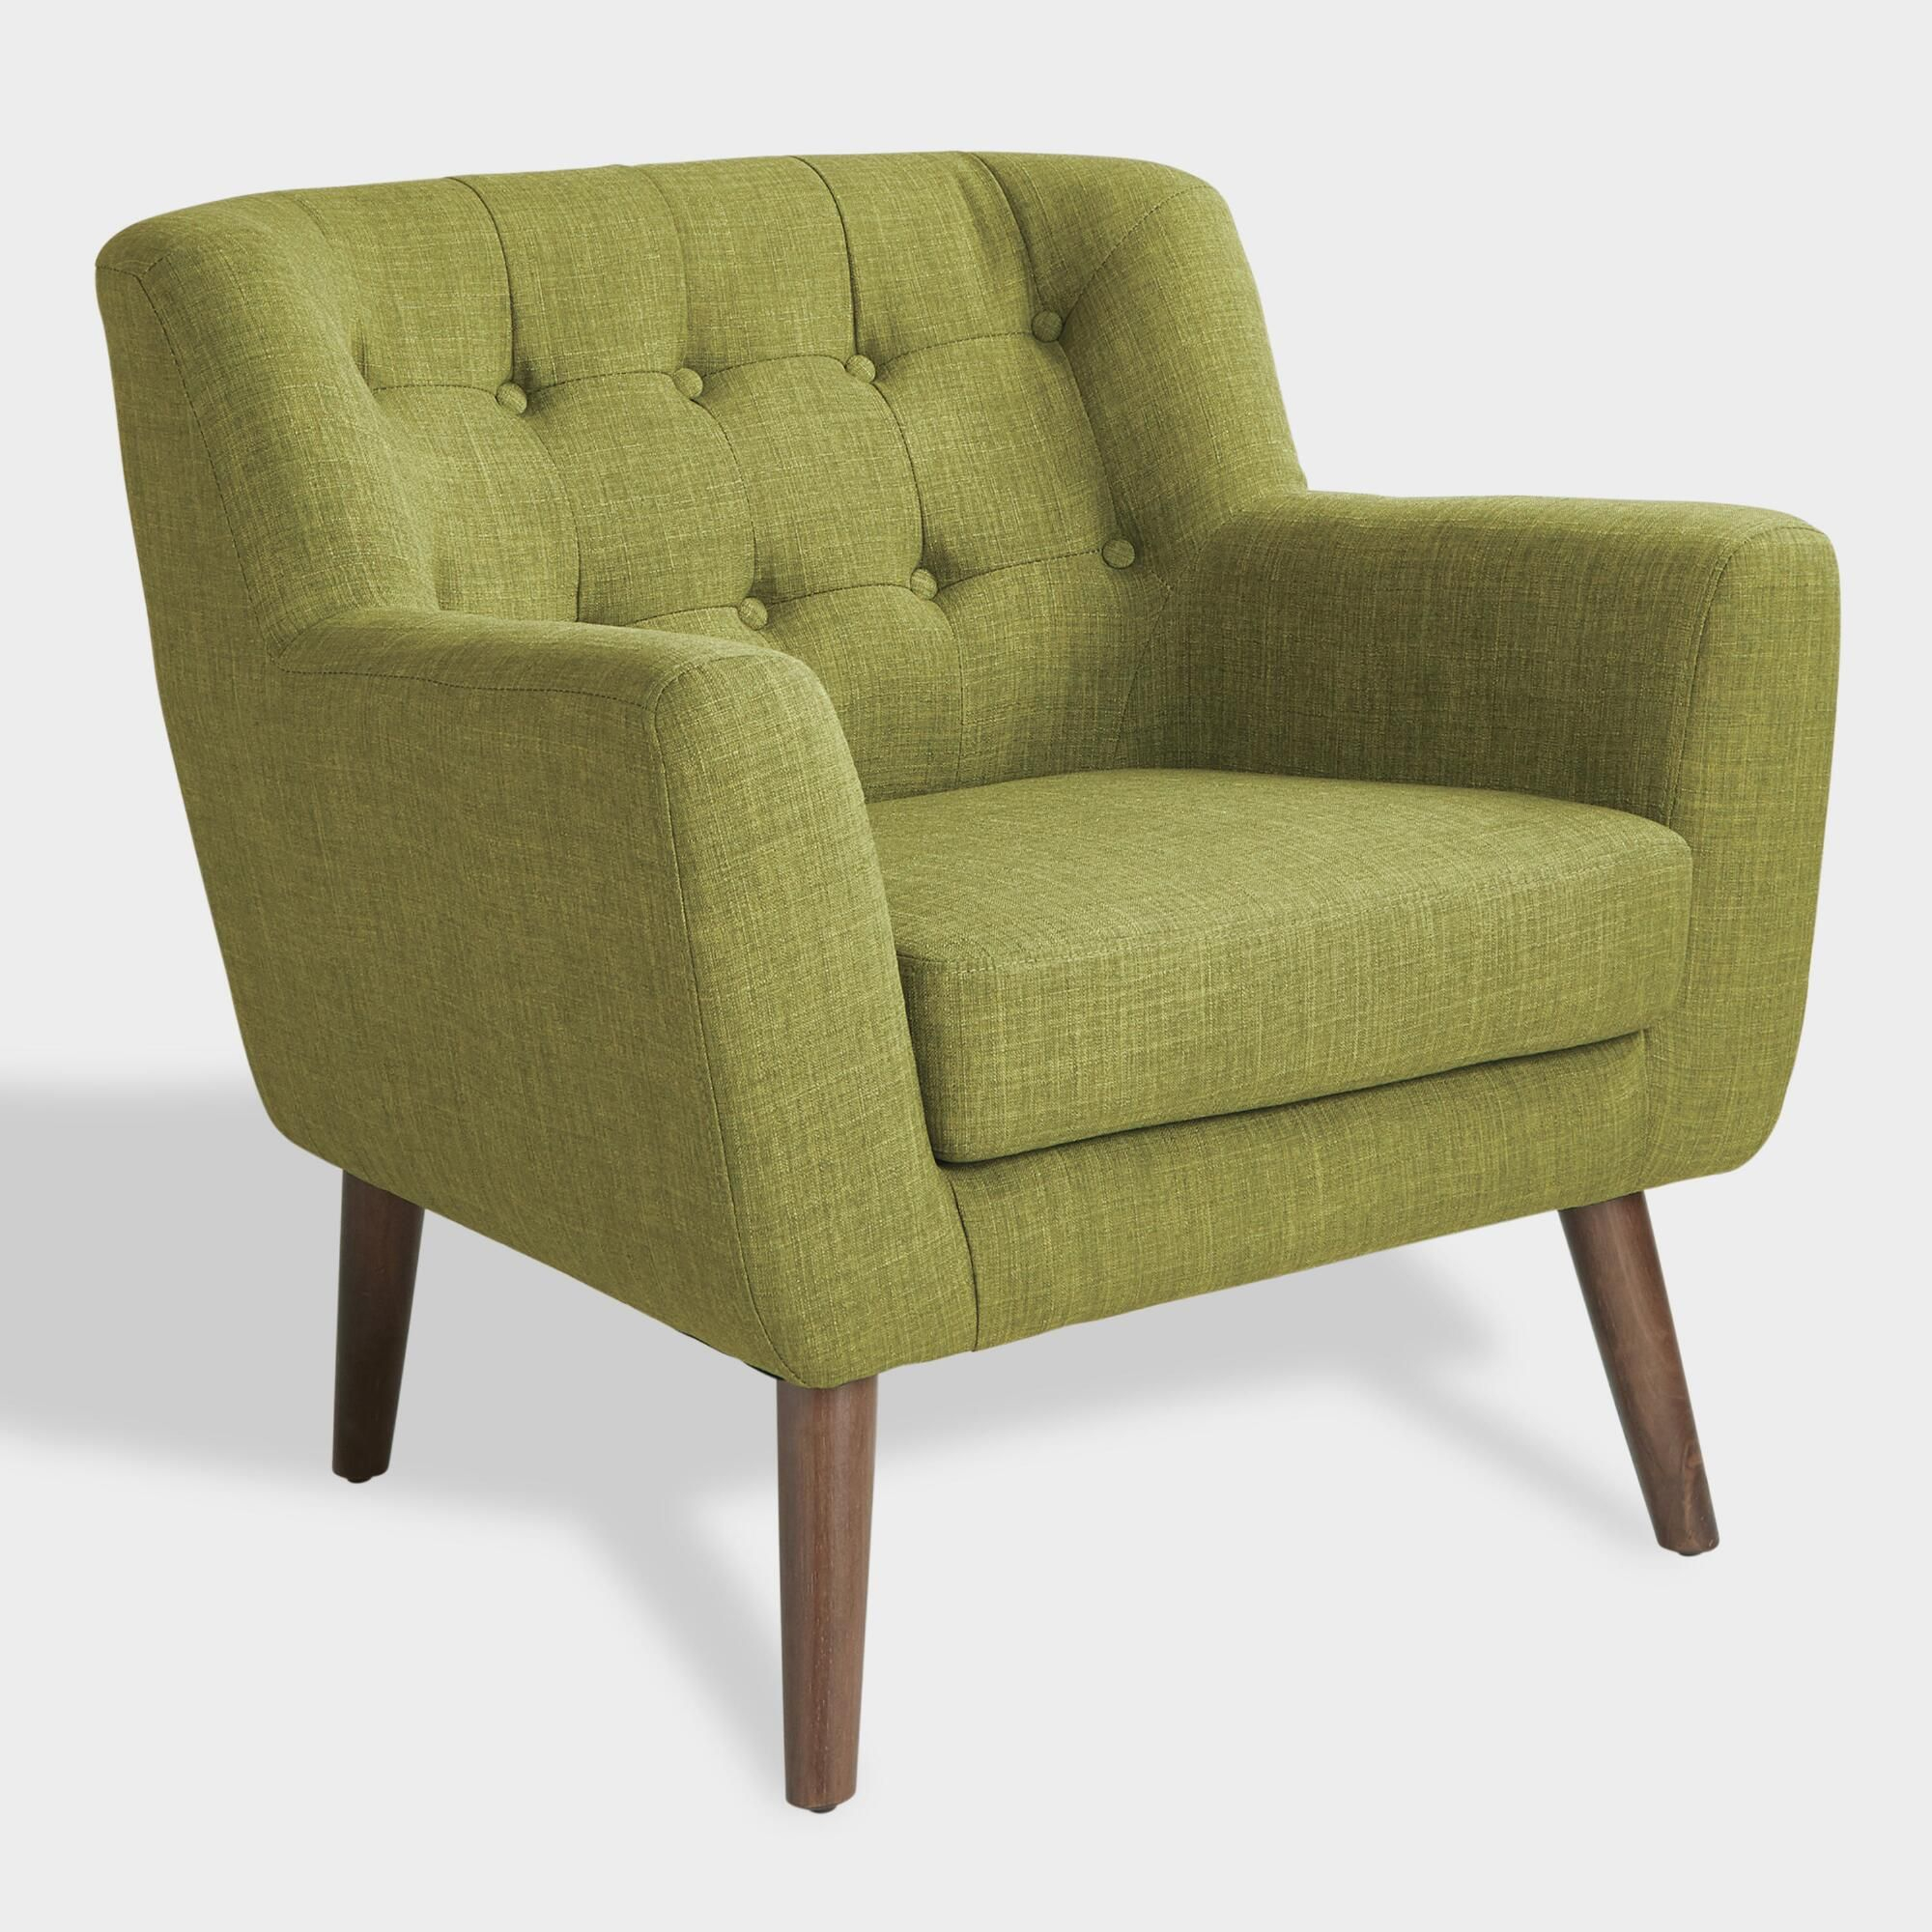 Settle Into The Comfort Of Our Mid Century Inspired Chair In Lenaghan Wingback Chairs (View 10 of 15)